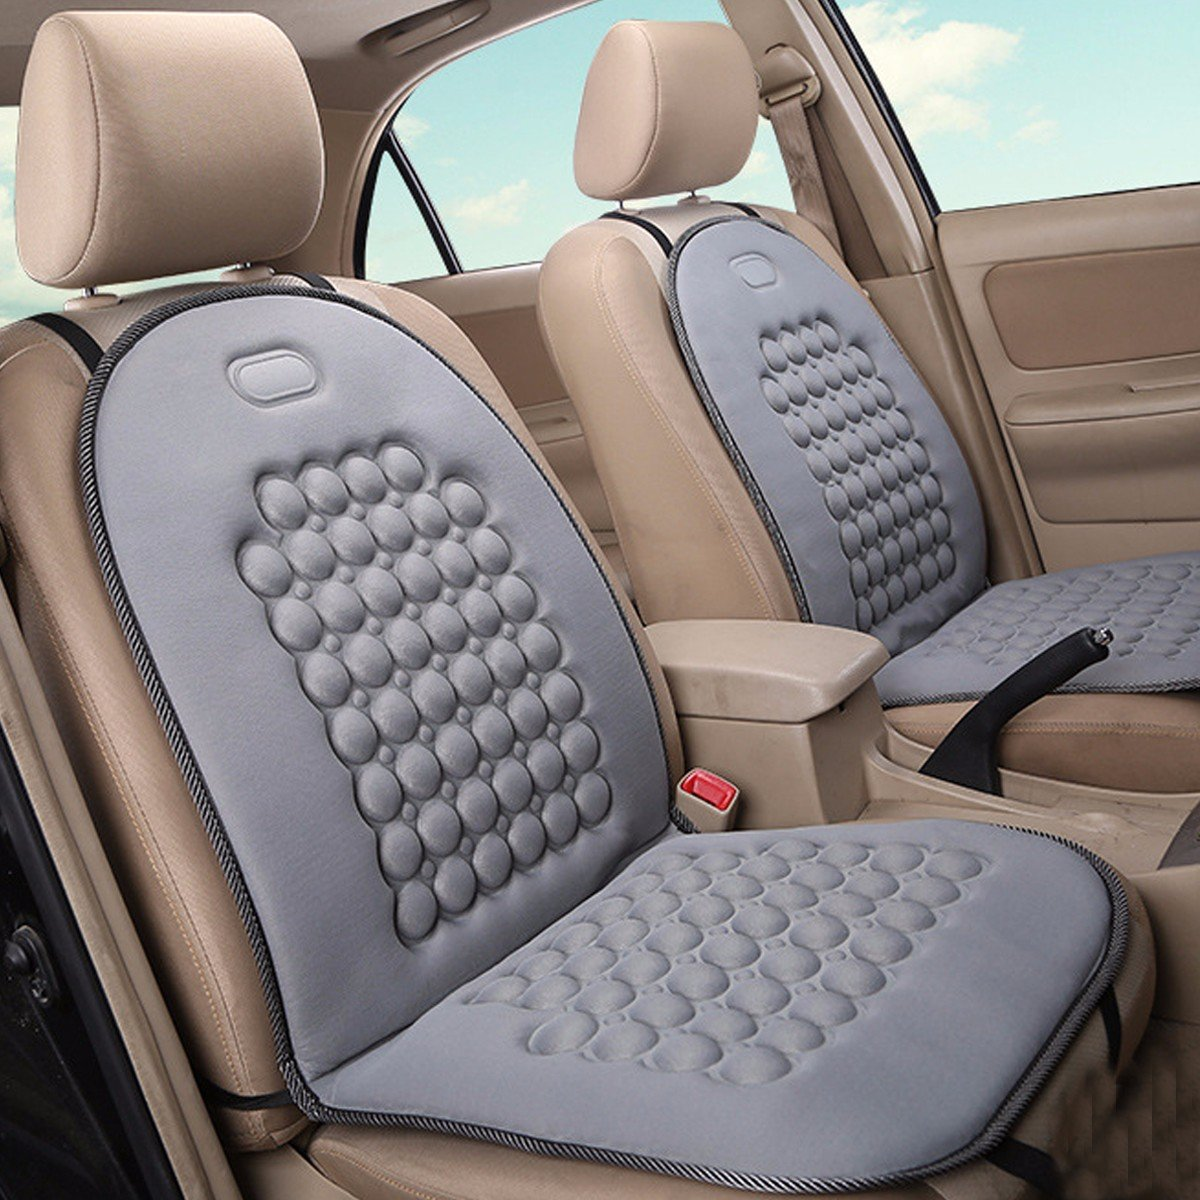 car seat cushion therapy massage cover padded bubble foam grey home office chair cover is worth. Black Bedroom Furniture Sets. Home Design Ideas